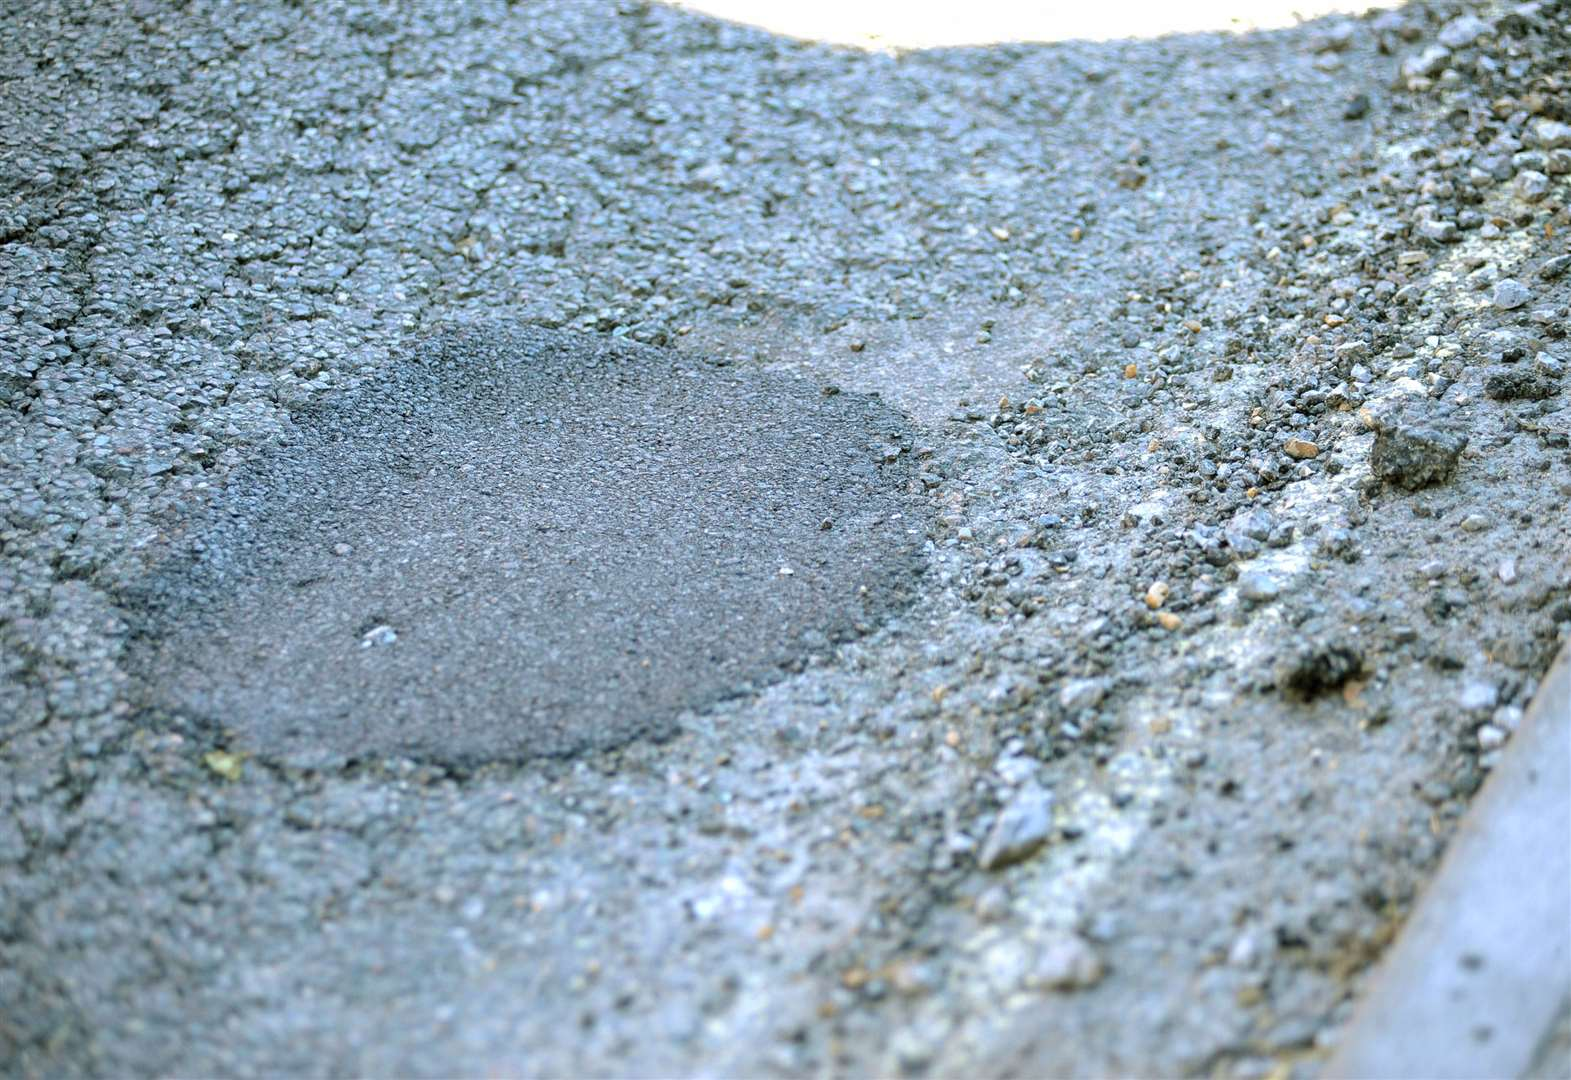 Suffolk's crumbling roads account for more than a third of a county council's complaints